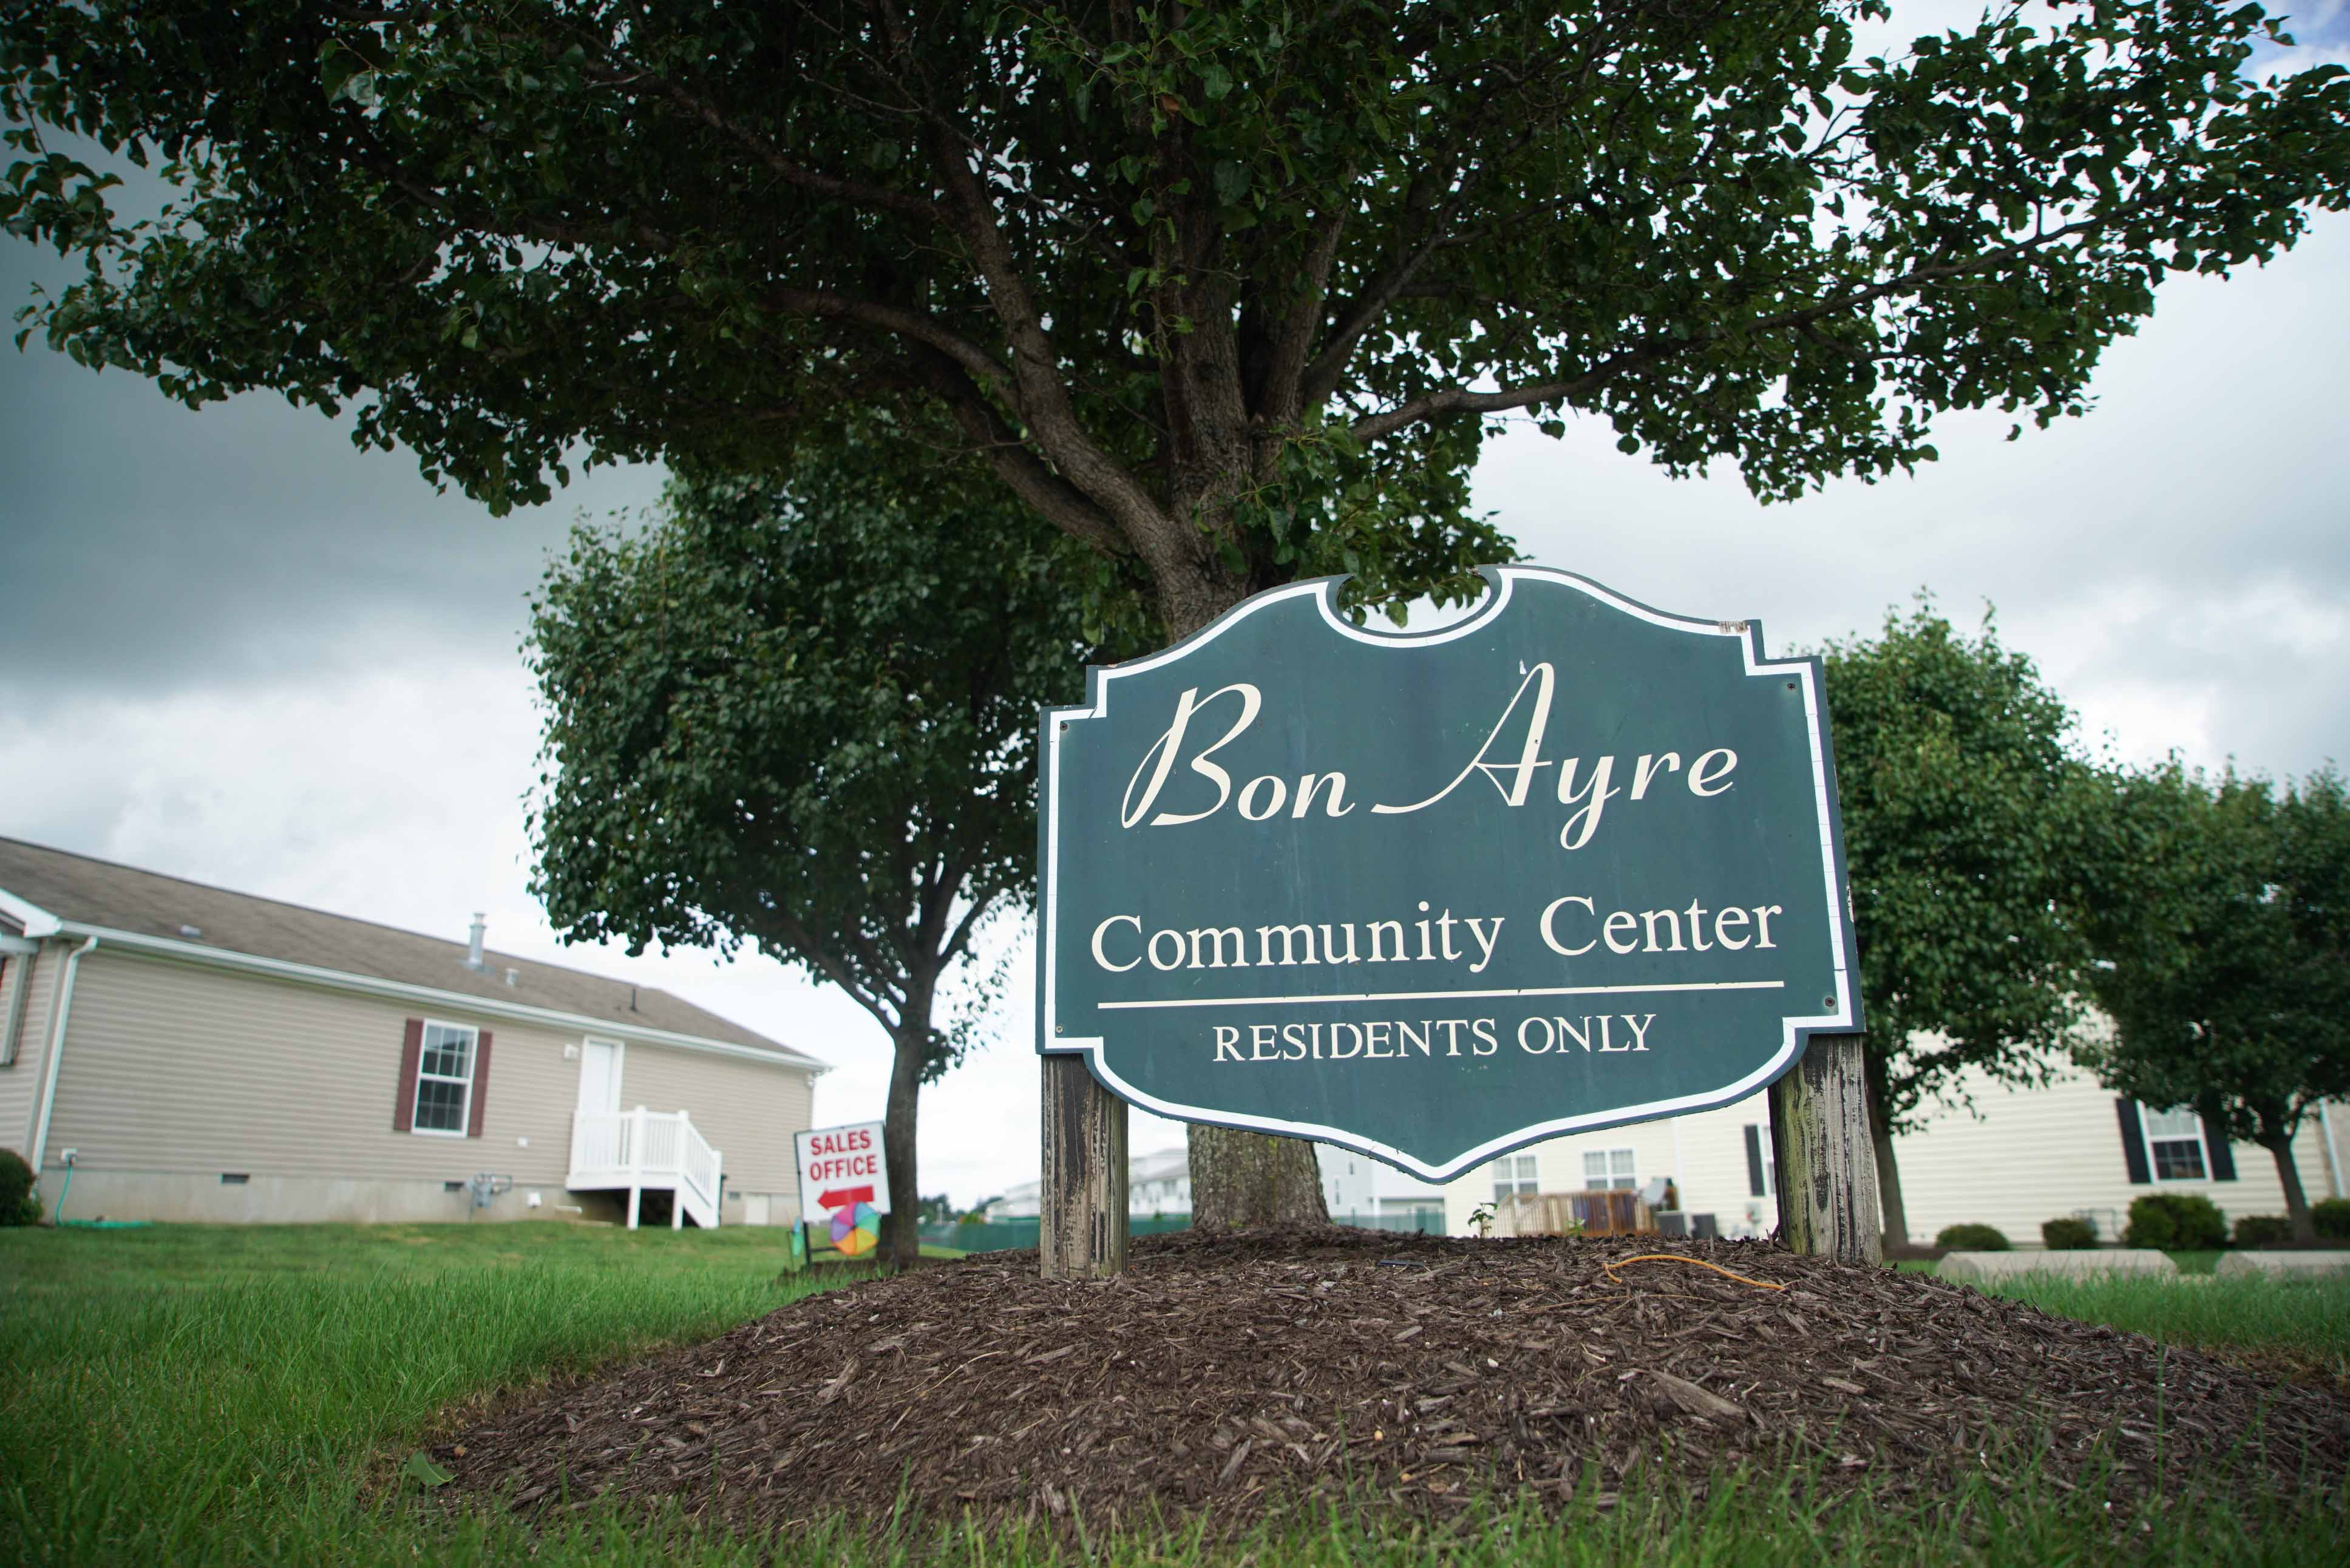 Residents of Smyrna's Bon Ayre community are getting amenities they don't want   Delaware Online